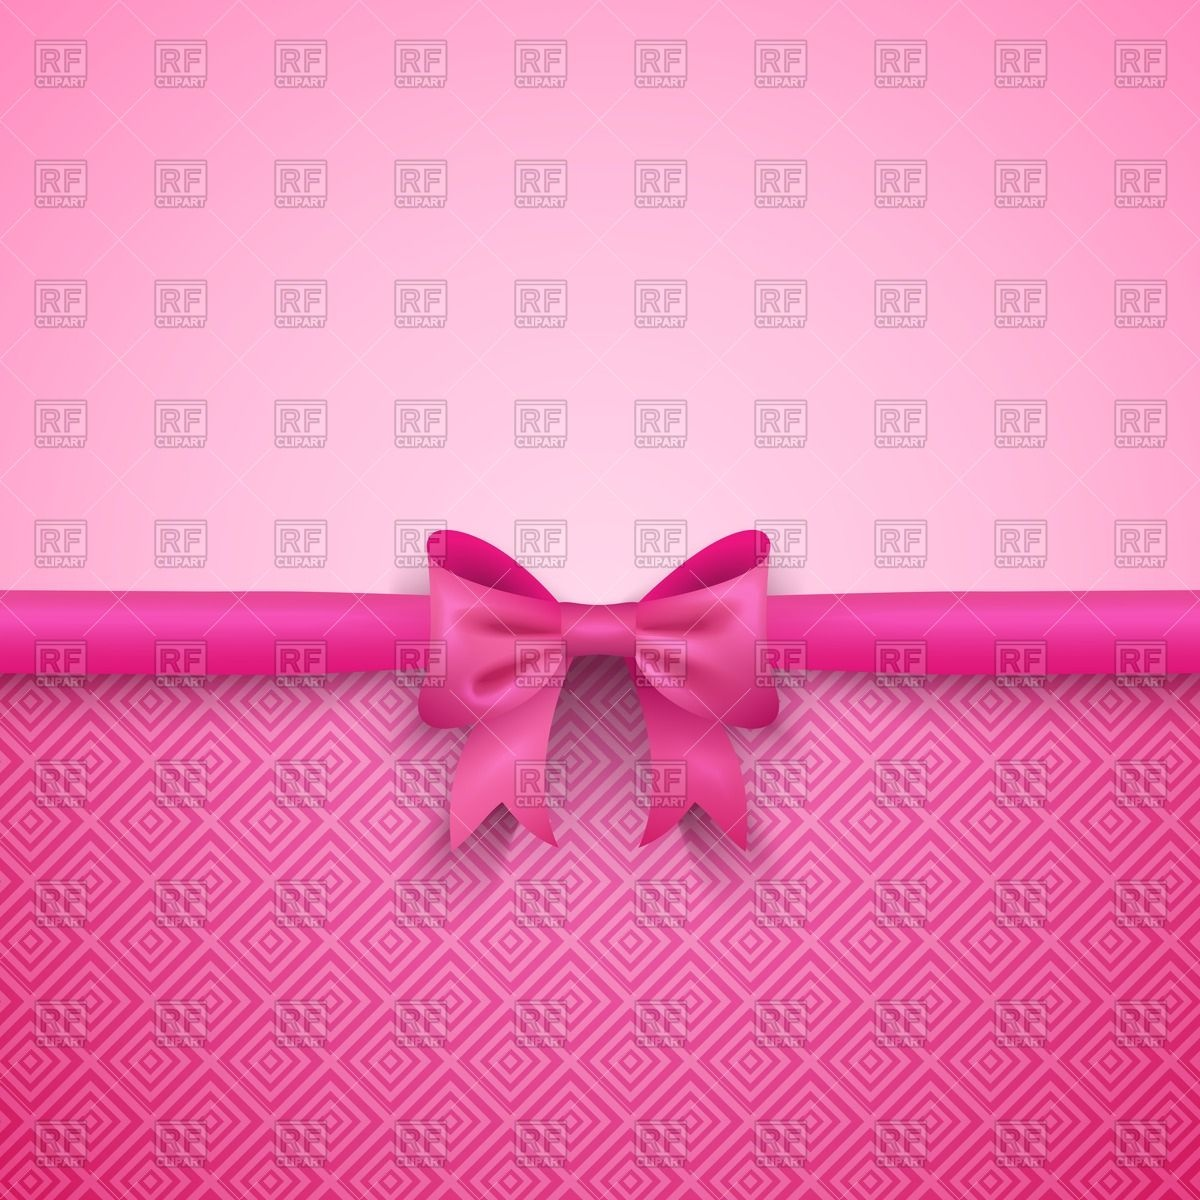 Romantic pink background with cute bow Vector Image #40889.